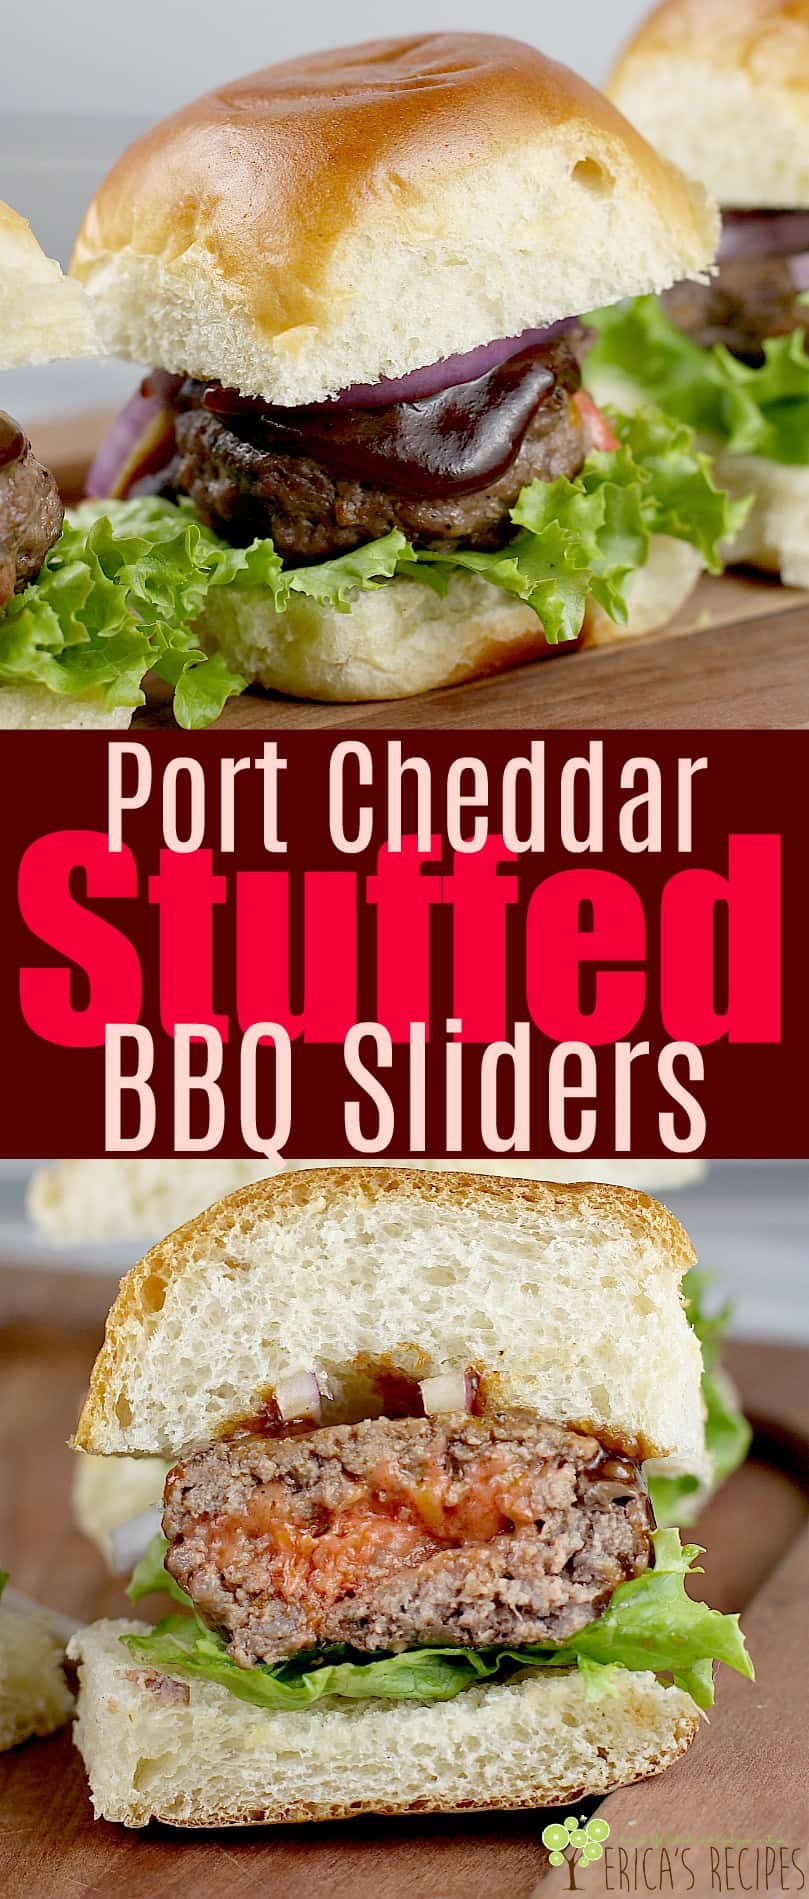 Port Cheddar Stuffed BBQ Sliders and no grill needed! #InspireWithCheese #ad #sliders #beef #recipe